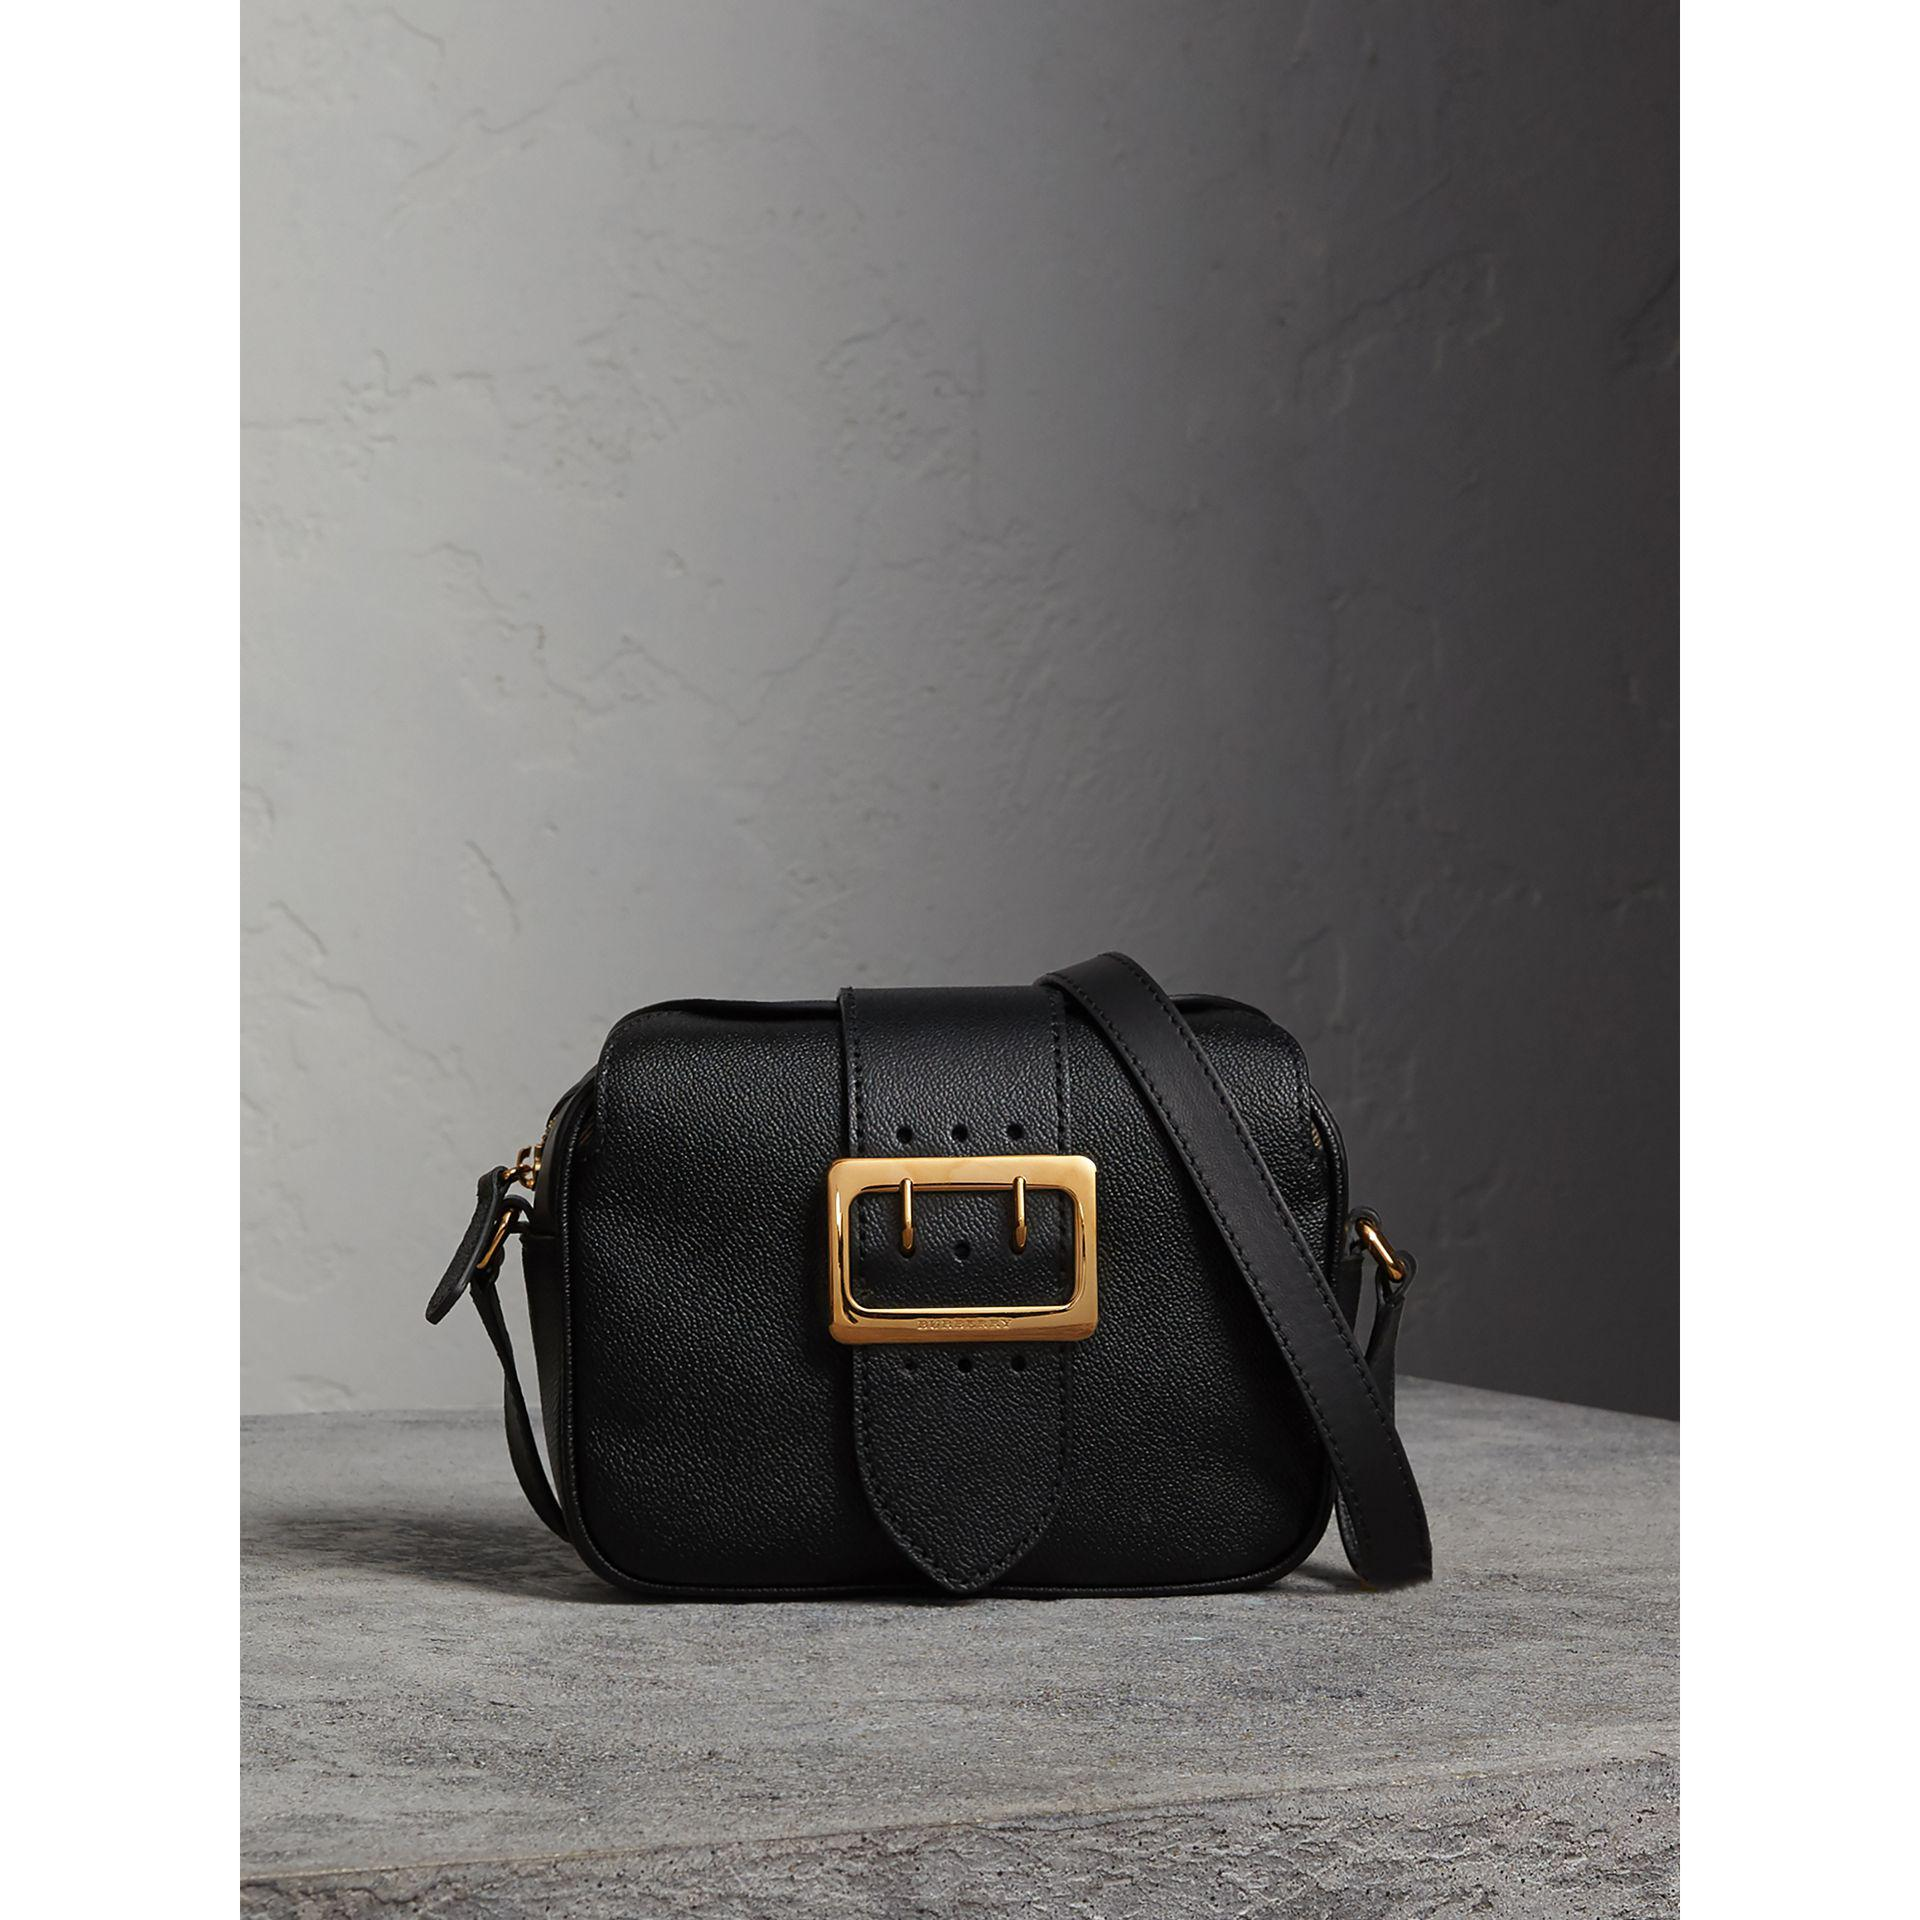 5edb73b9fc01 Lyst - Burberry The Small Buckle Crossbody Bag In Leather in Black